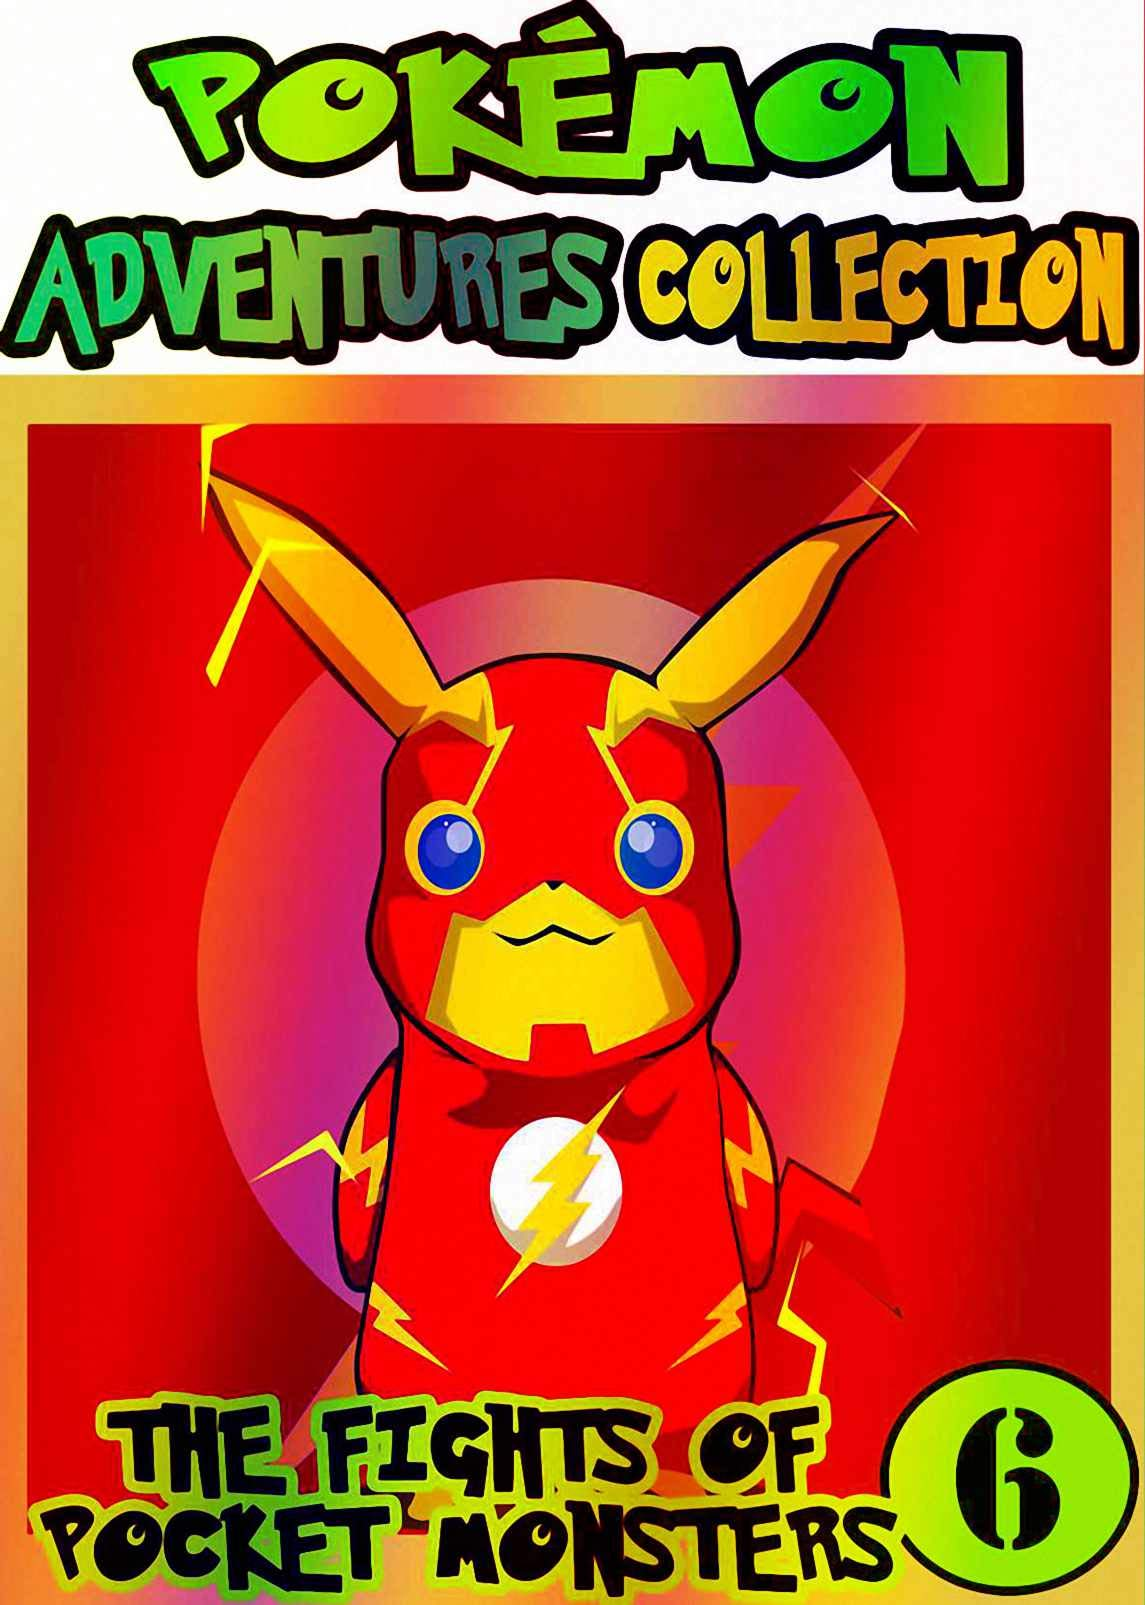 Pocket Adventure: Collection Pack 6 - Pocket Monsters Manga Adventures Pokemon Graphic Novel For Kids, Children